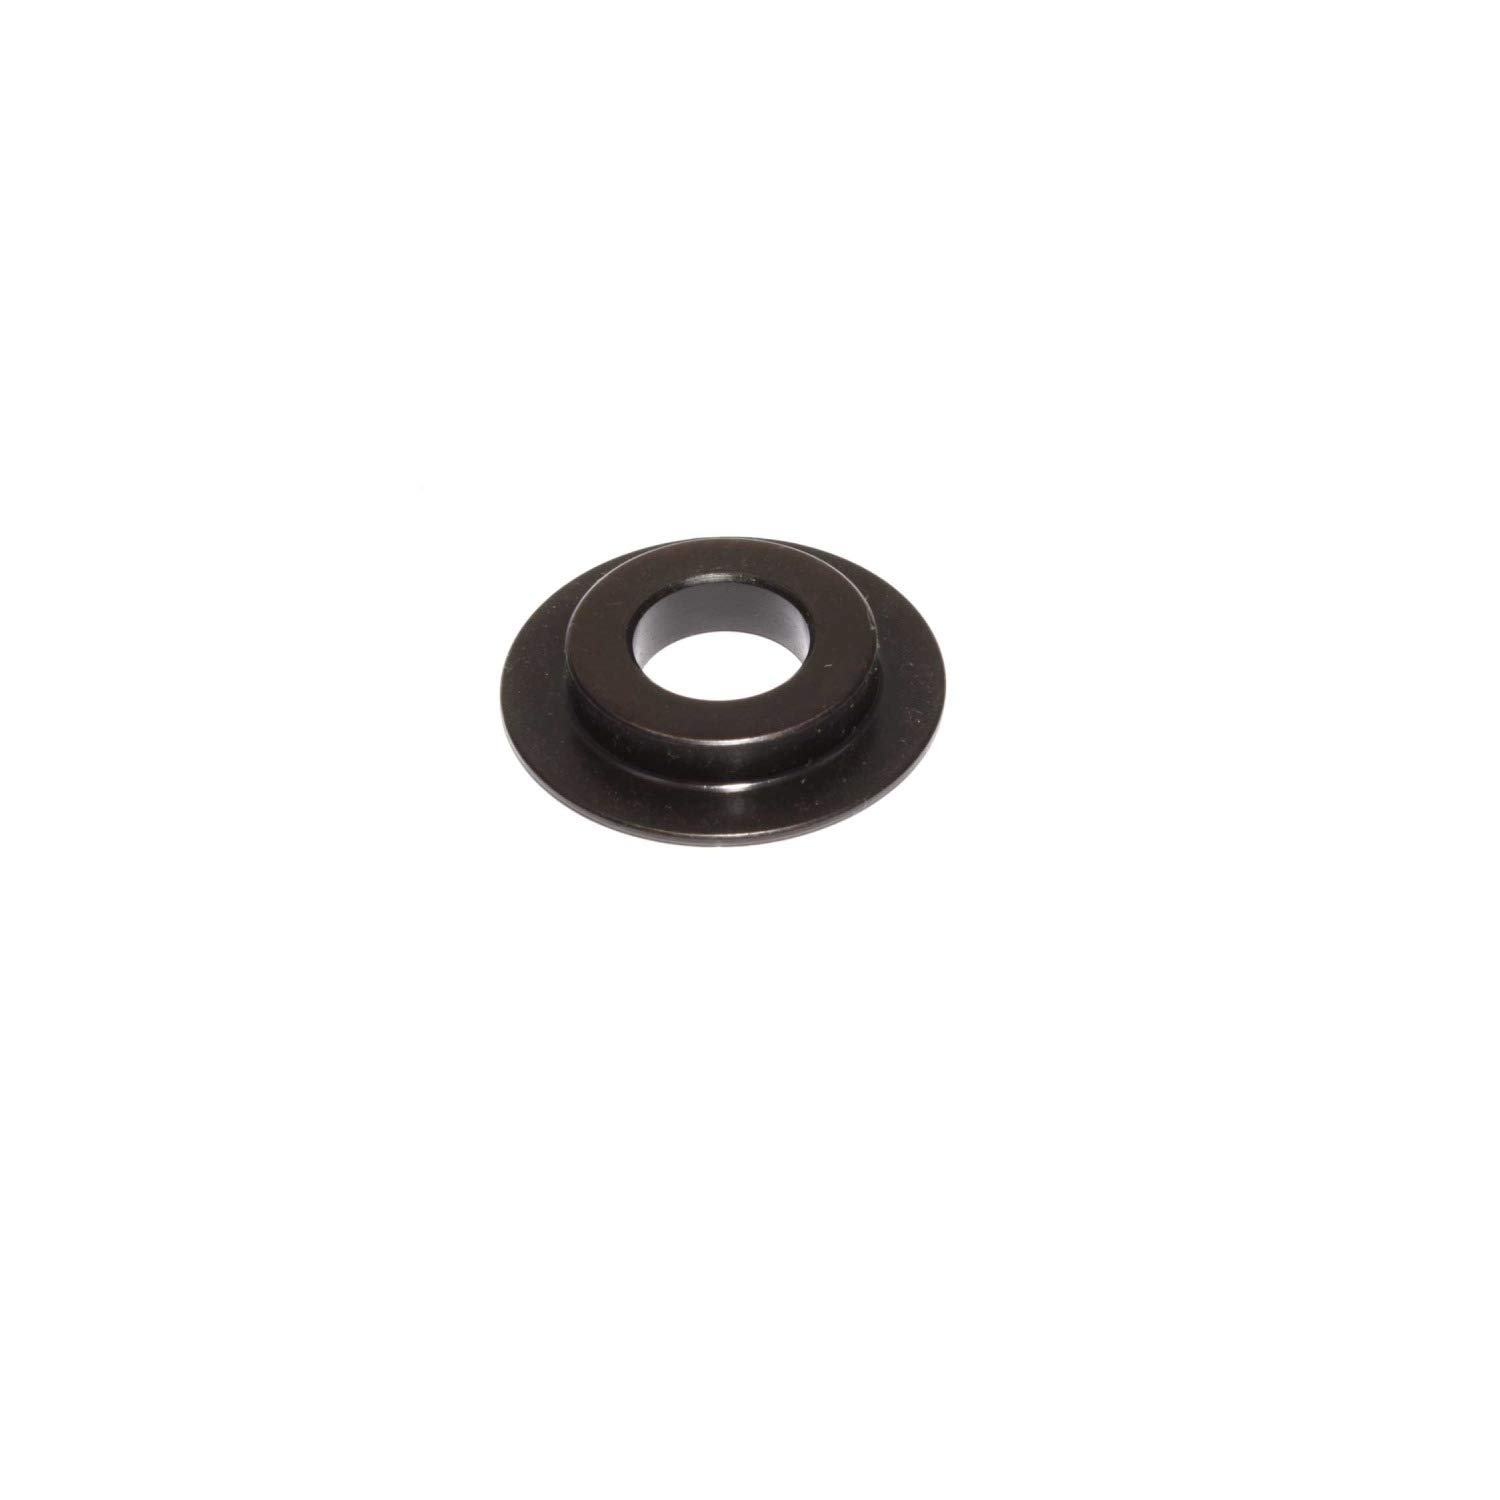 COMP Cams 4640-1 Spring Seat 4640-1 For 26055 With .570 Guide